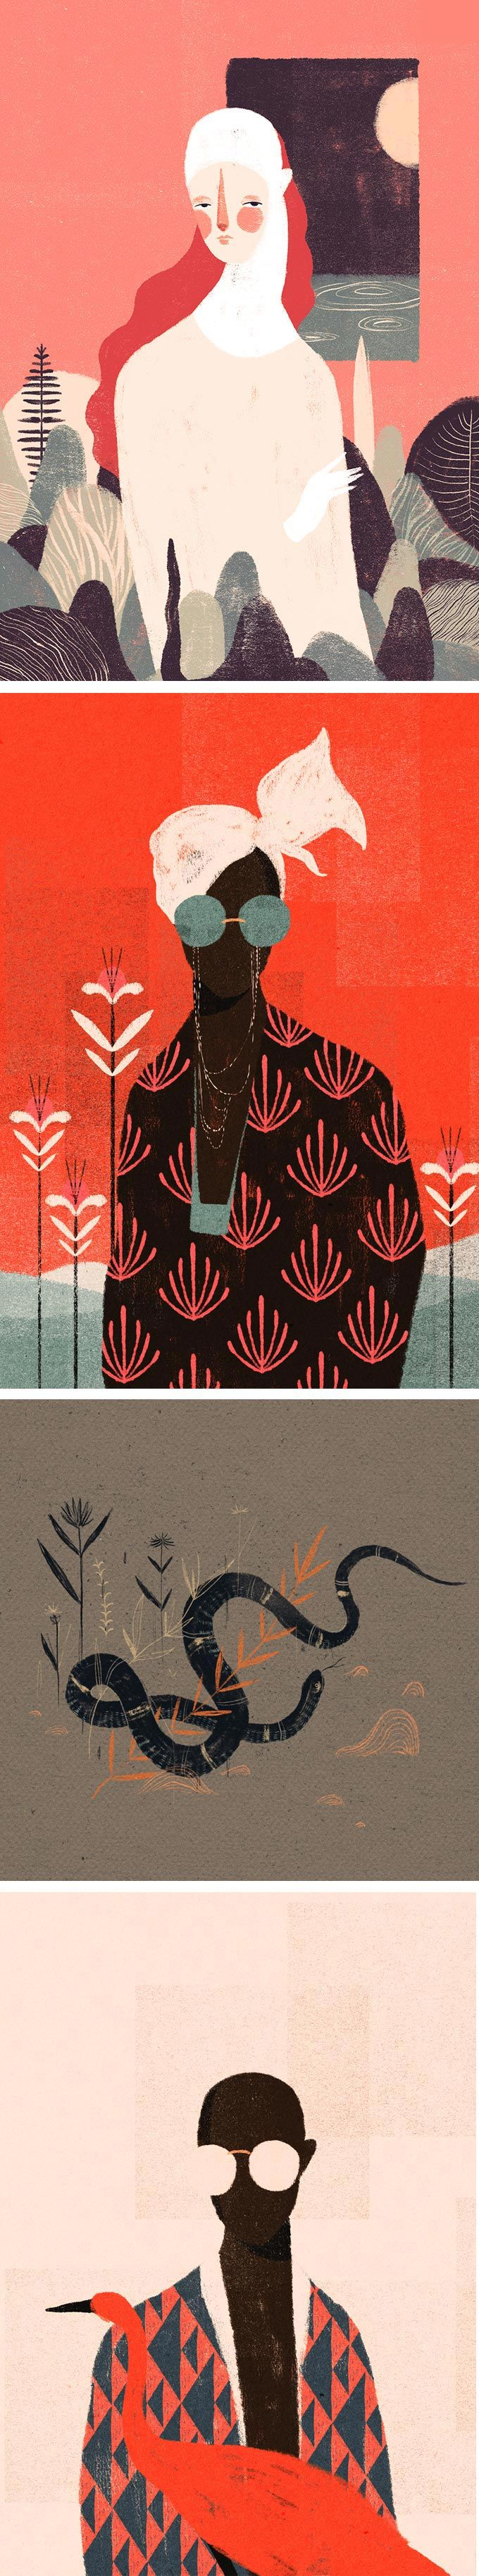 Illustrator Willian Santiago has a gorgeous way of using texture in his works. They have the look of a print, with their distorted edges and color overlay.